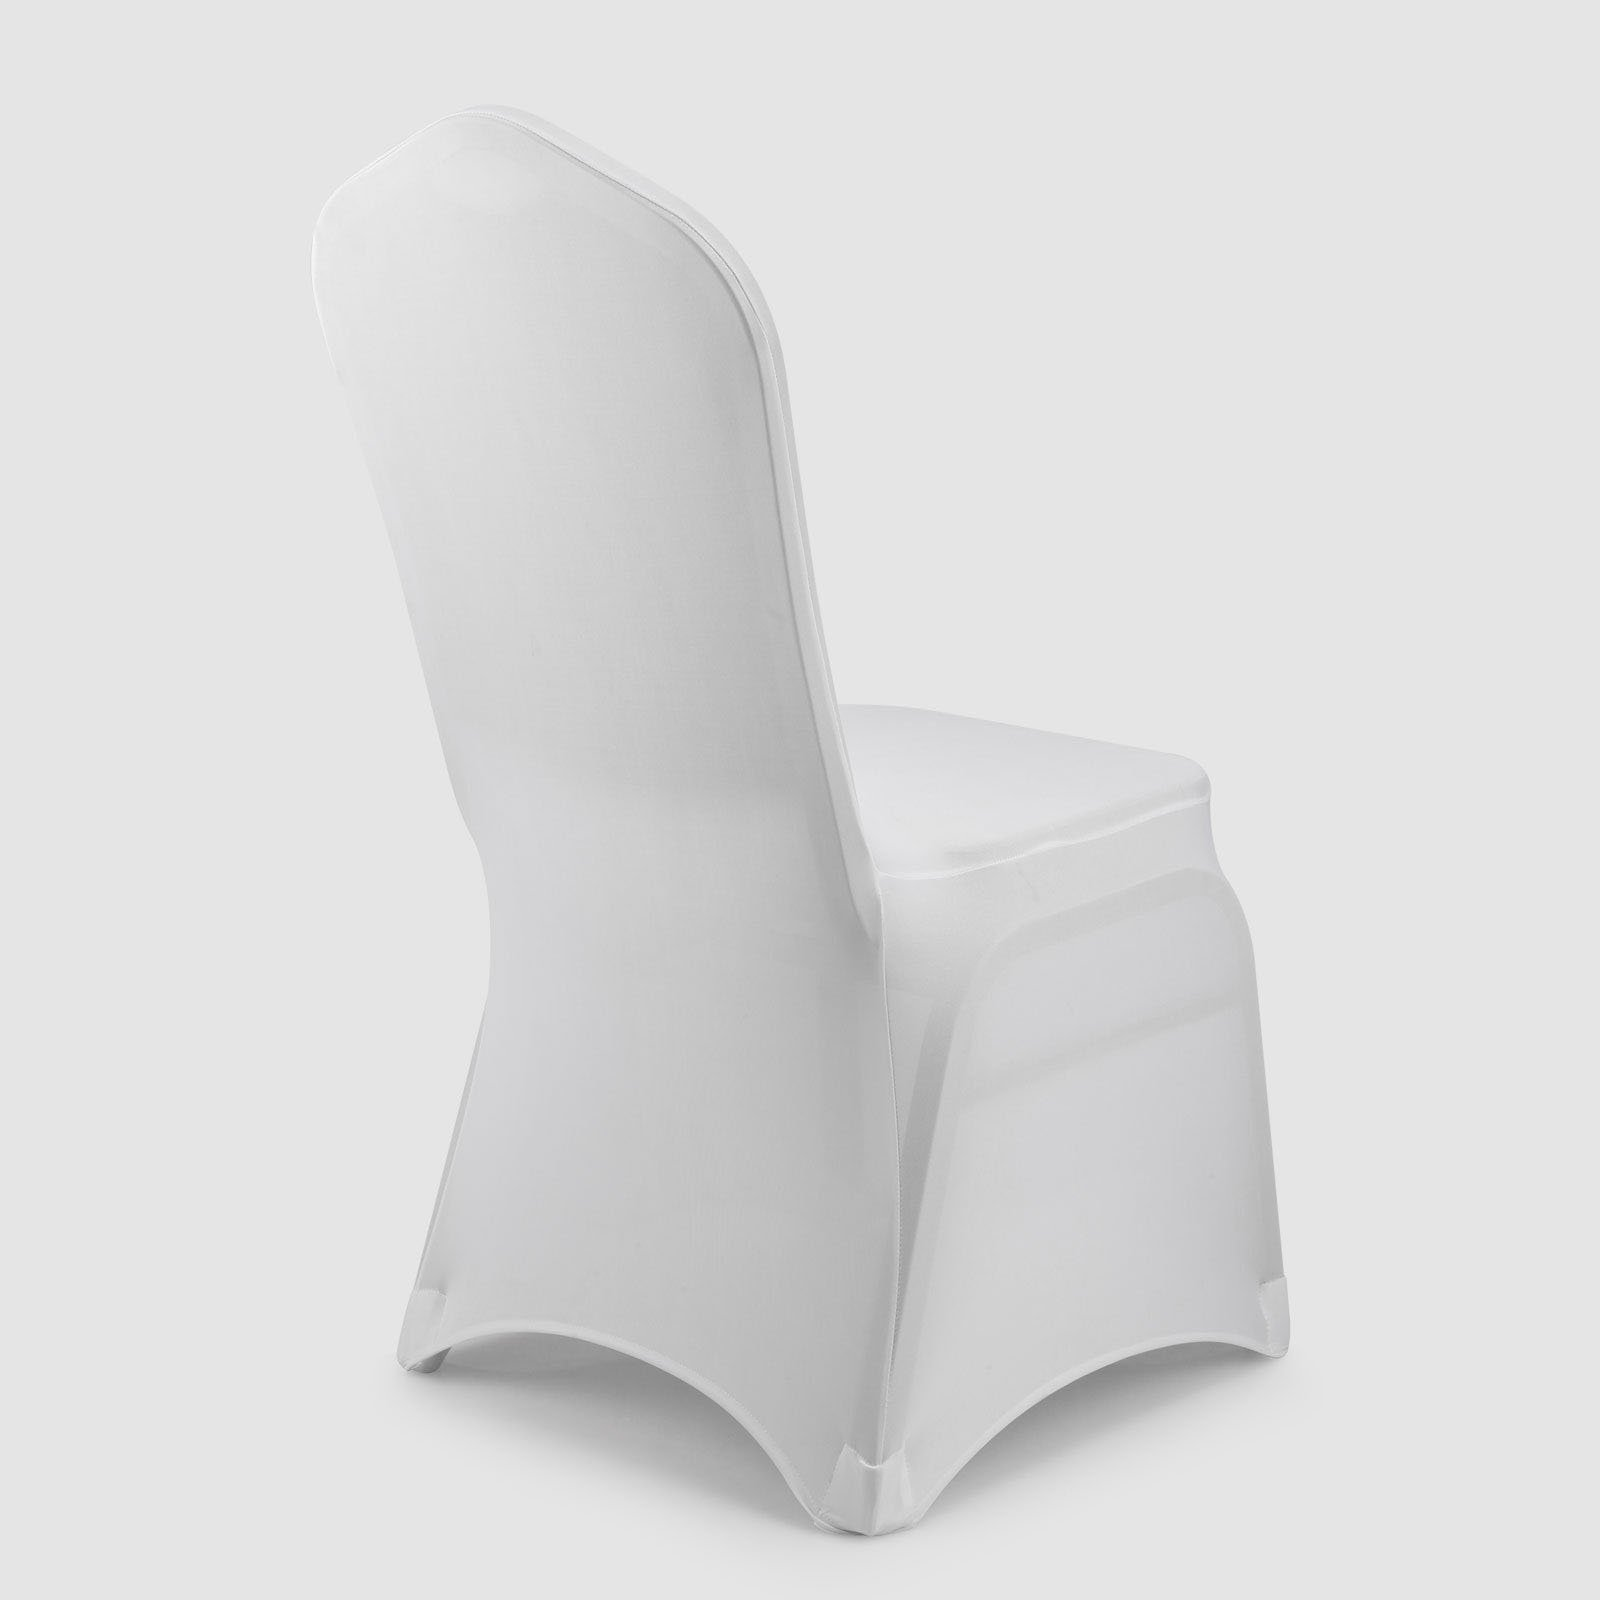 GFCC Set of 120pcs White Color Spandex Fitted Stretchable Chair Covers,Wedding Party Banquet Chair Covers